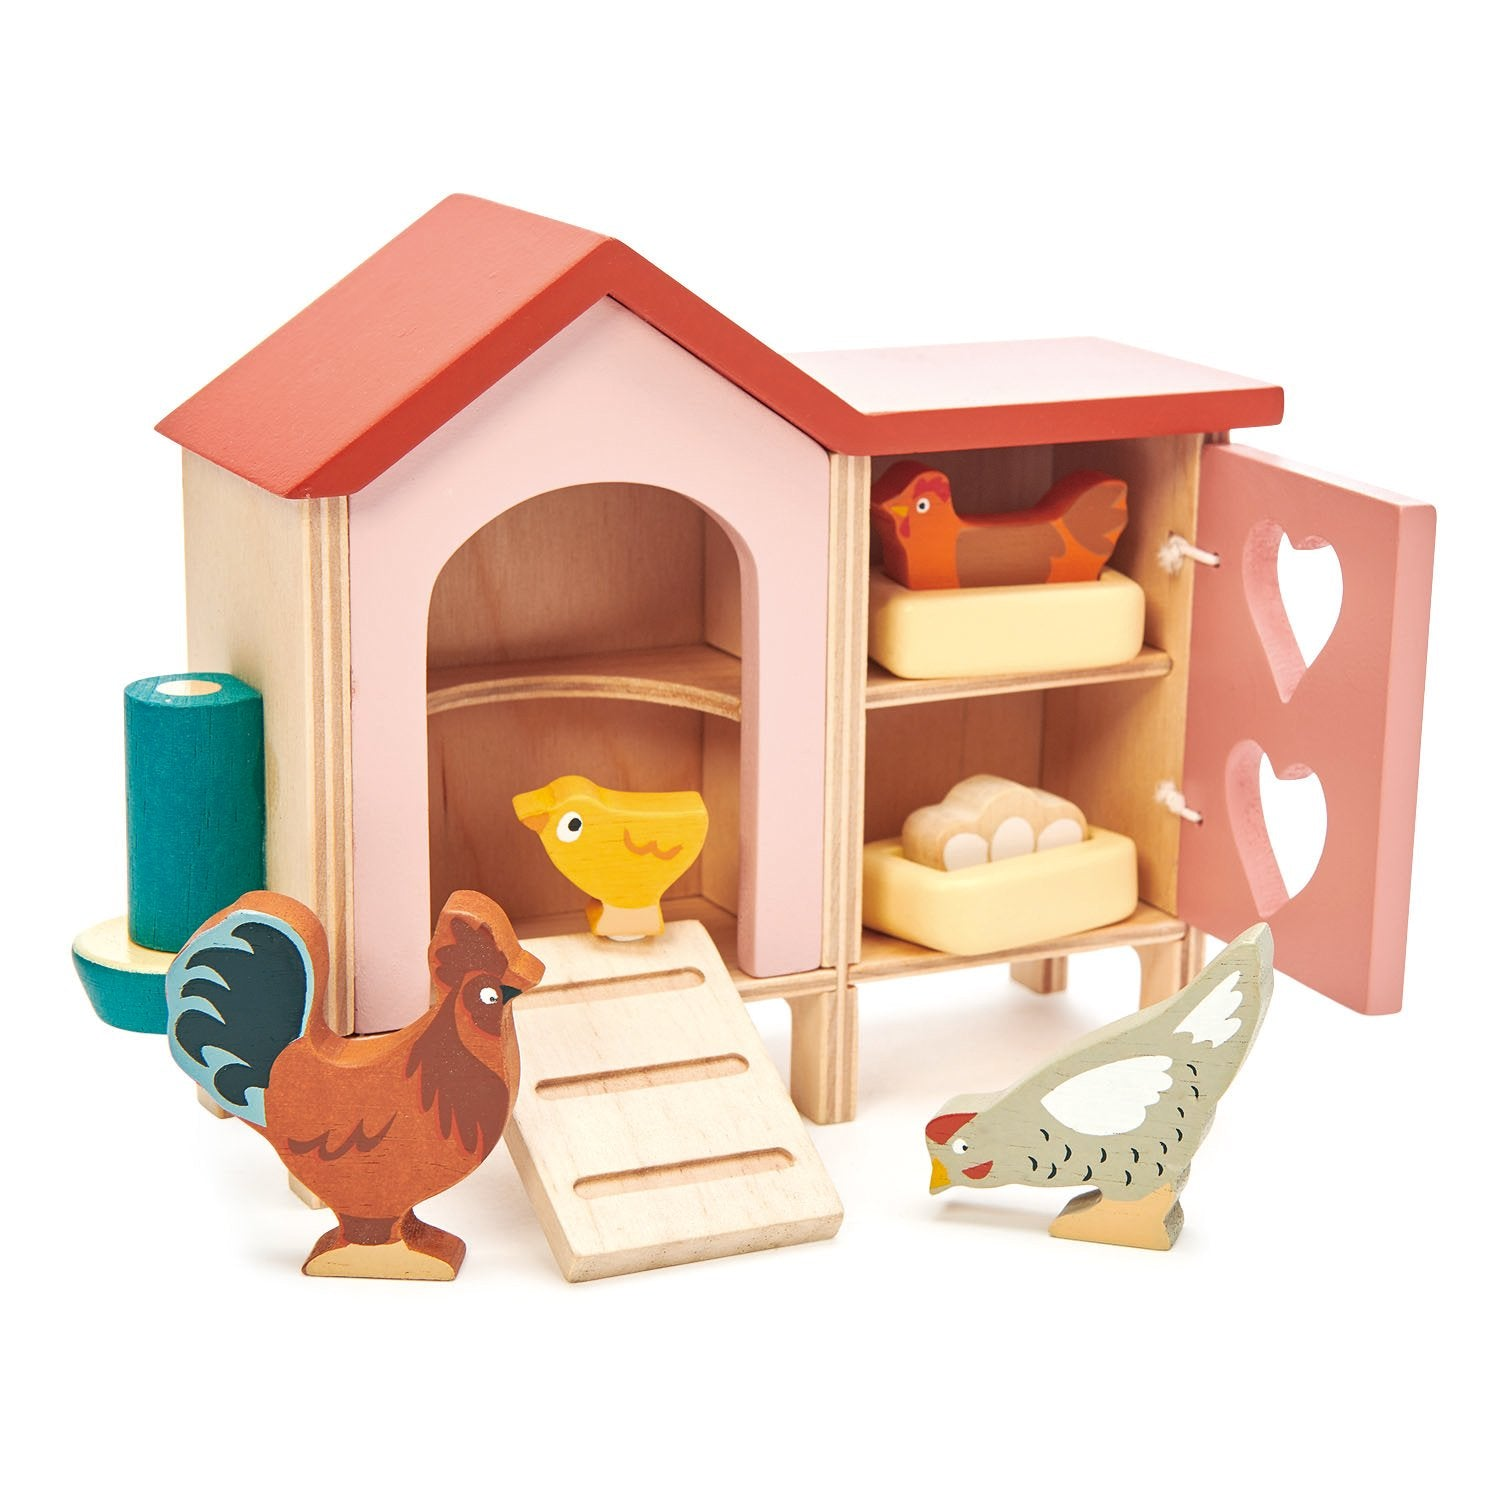 Tenderleaf Toys Chicken Coop Tenderleaf Toys Wooden Toys at Little Earth Nest Eco Shop